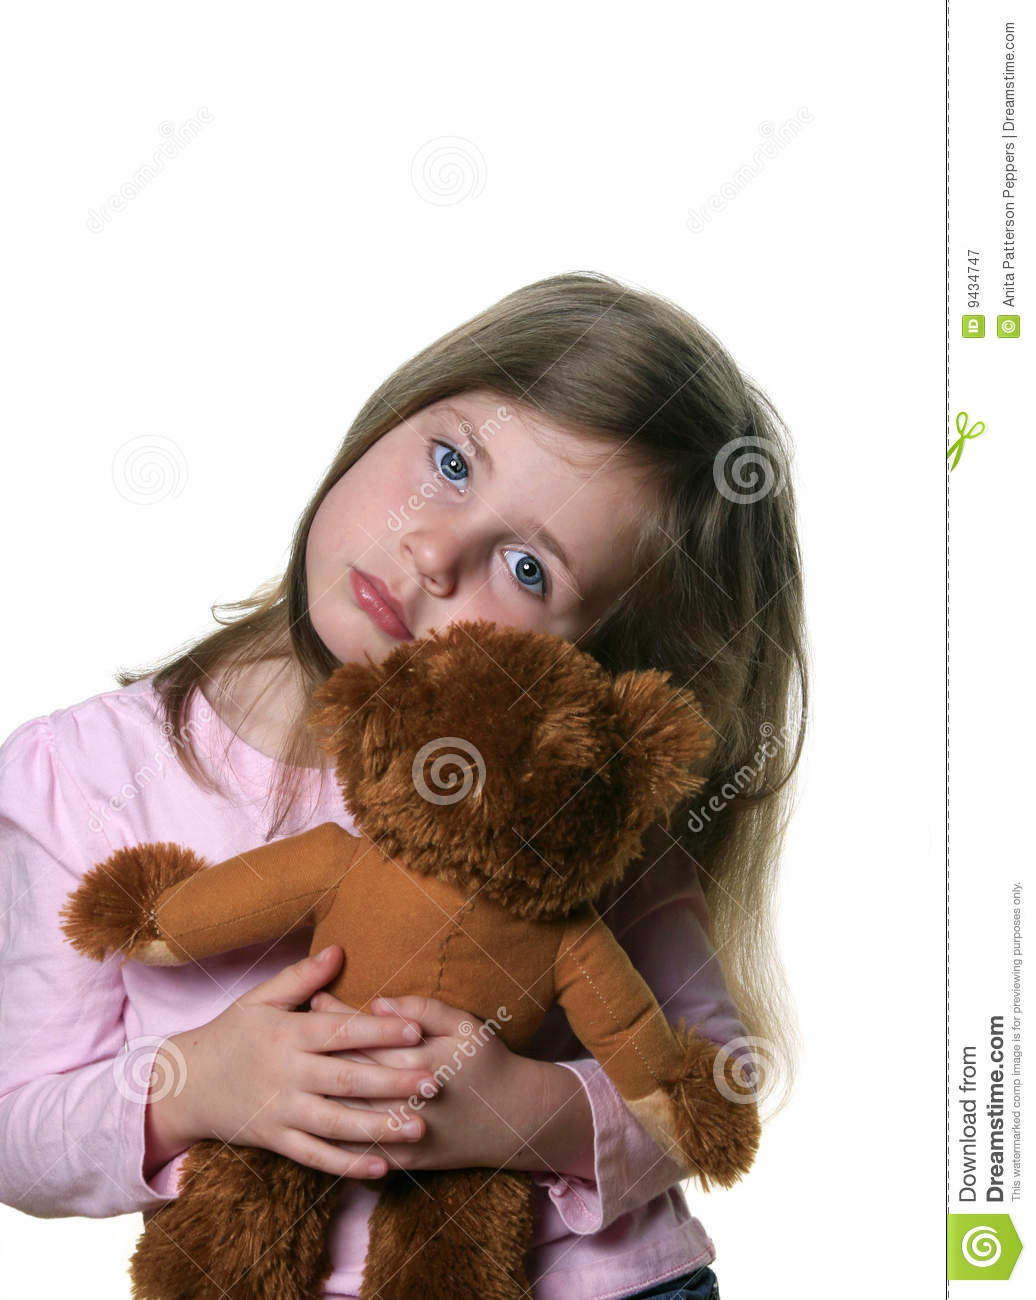 Kind met teddybear